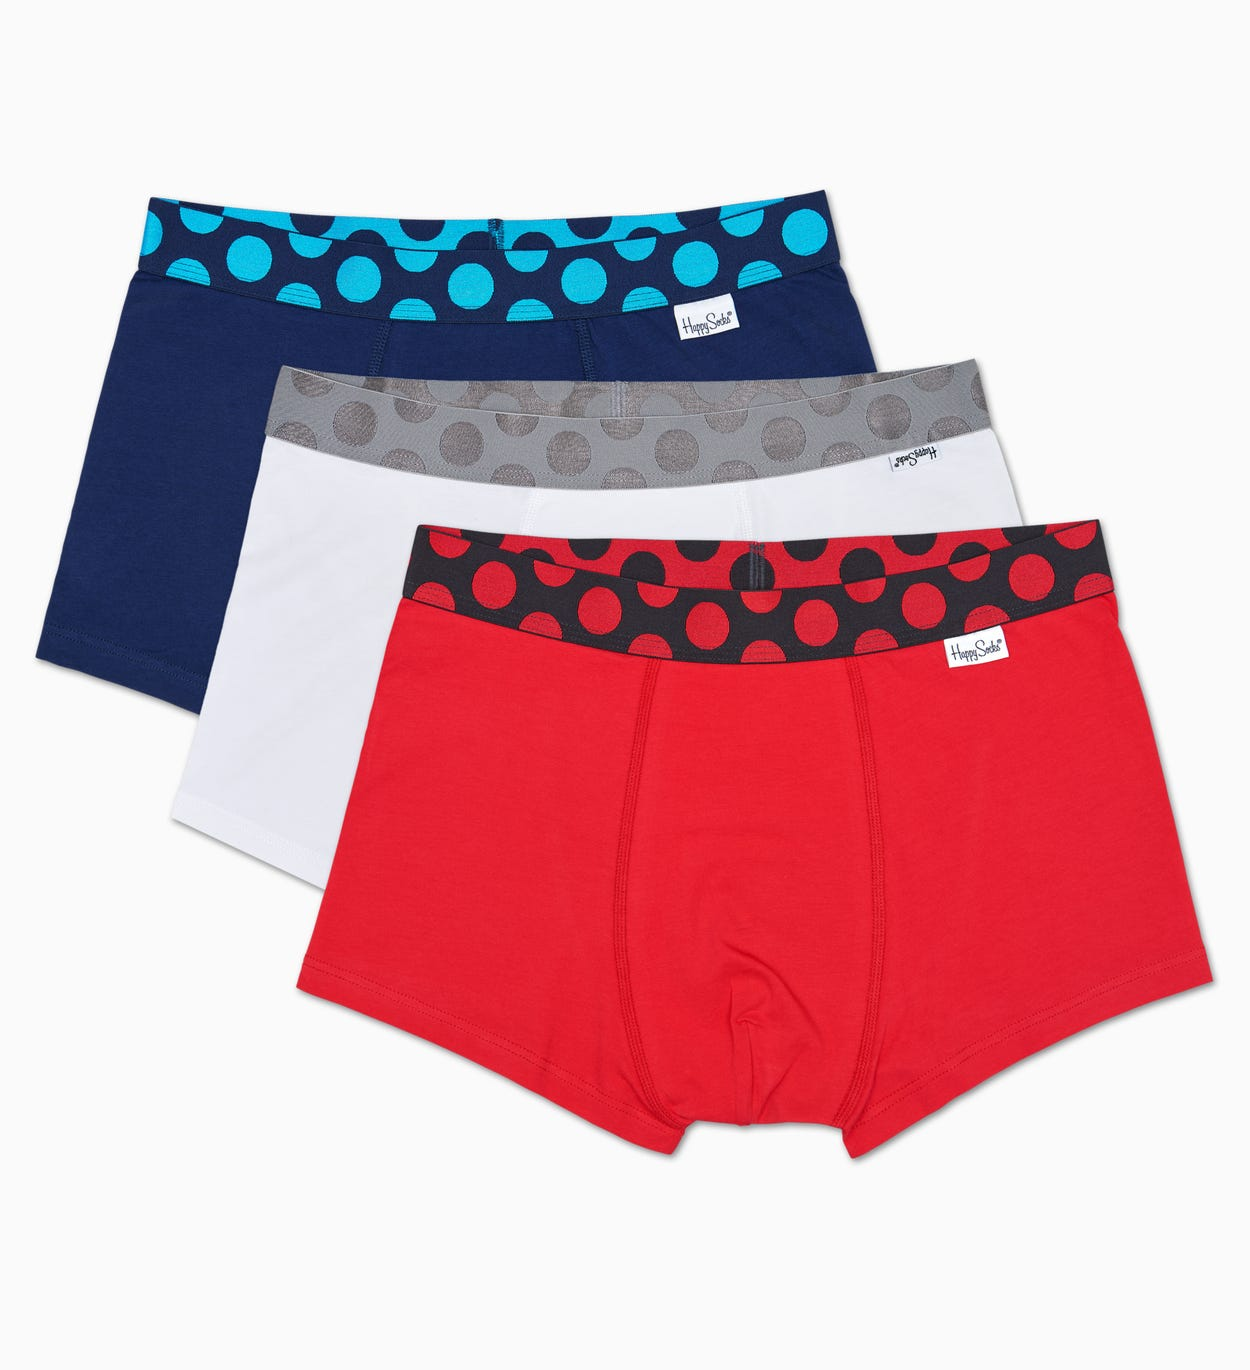 3-Pack Pop Trunk, Blue - Men's Underwear | Happy Socks